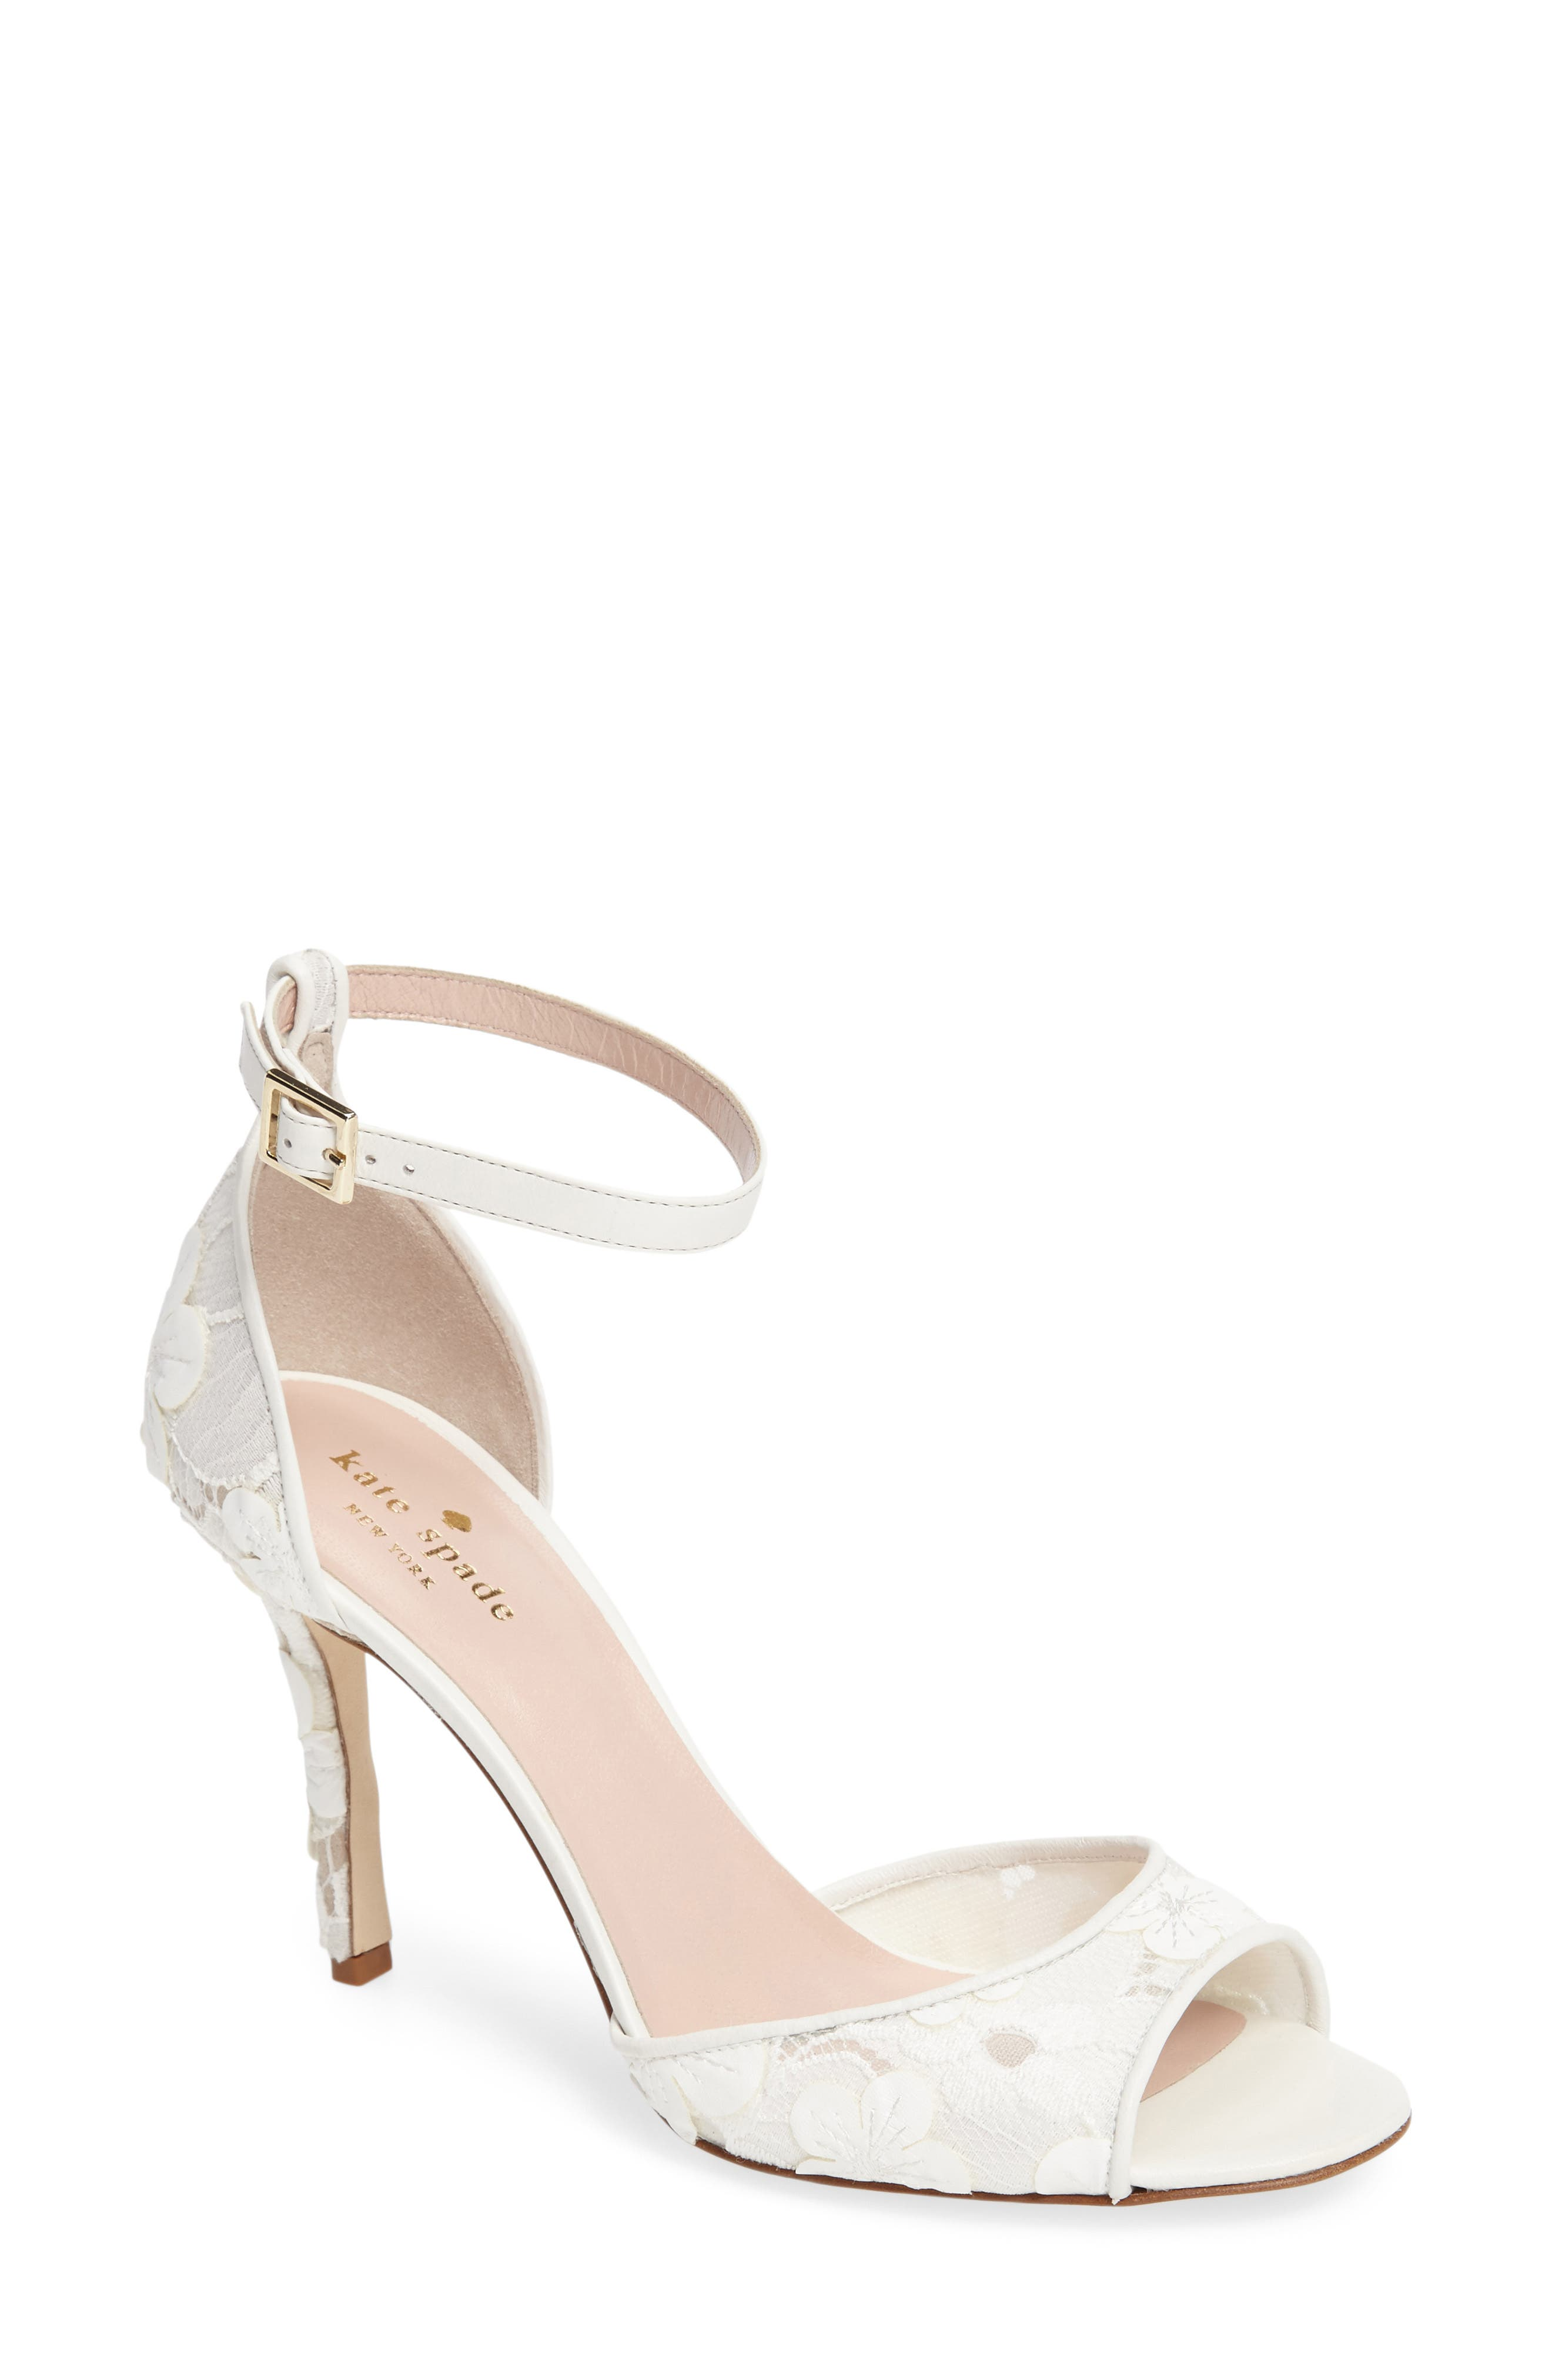 Main Image - kate spade new york ideline floral lace sandal (Women)